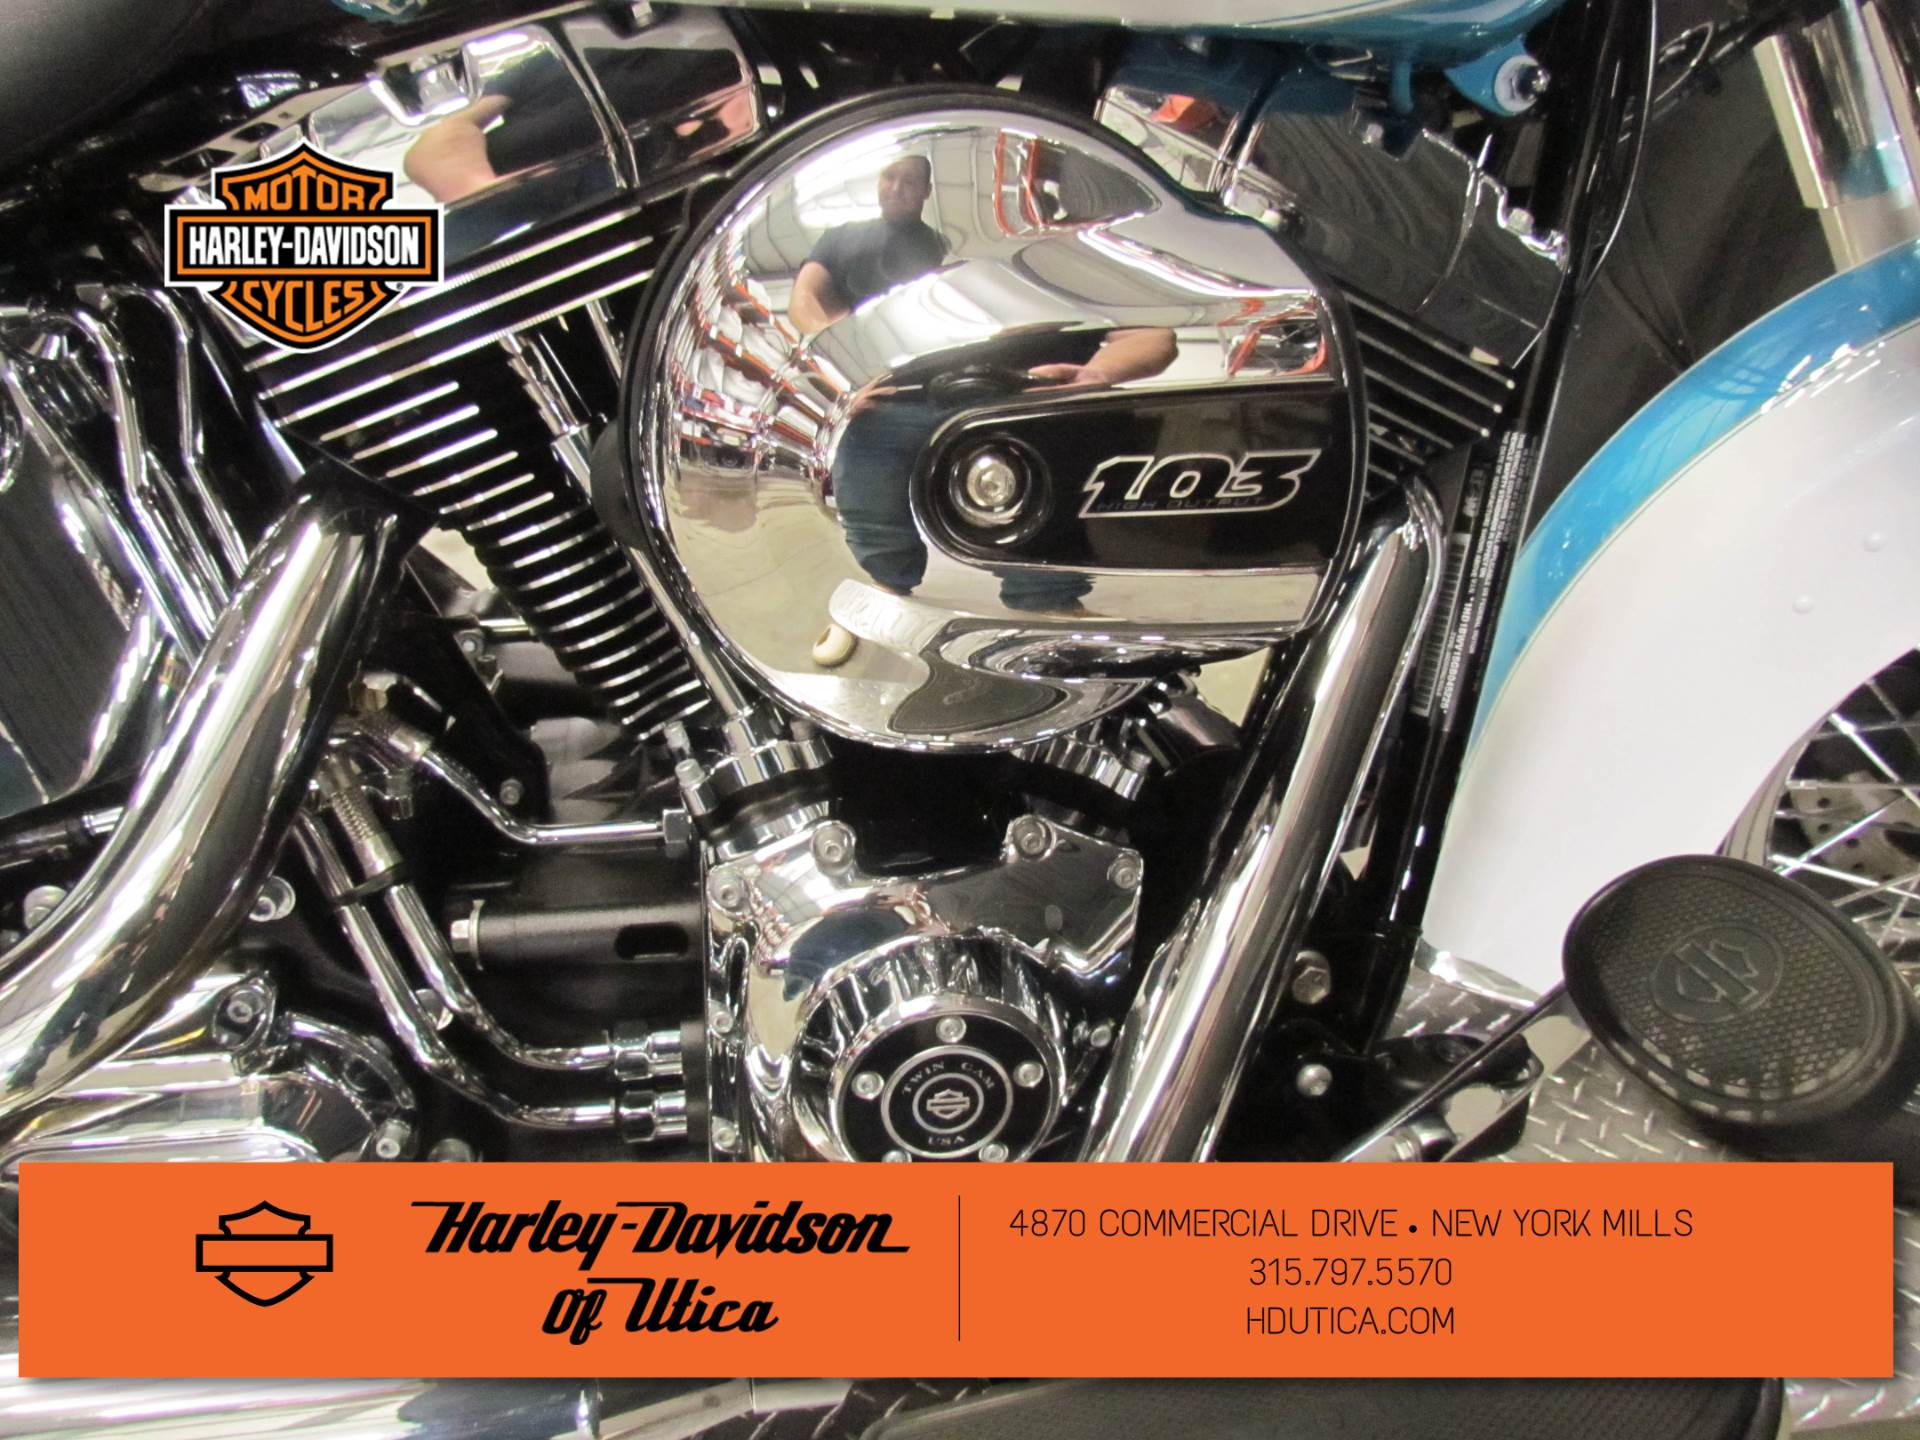 2016 Harley-Davidson Heritage Softail® Classic in New York Mills, New York